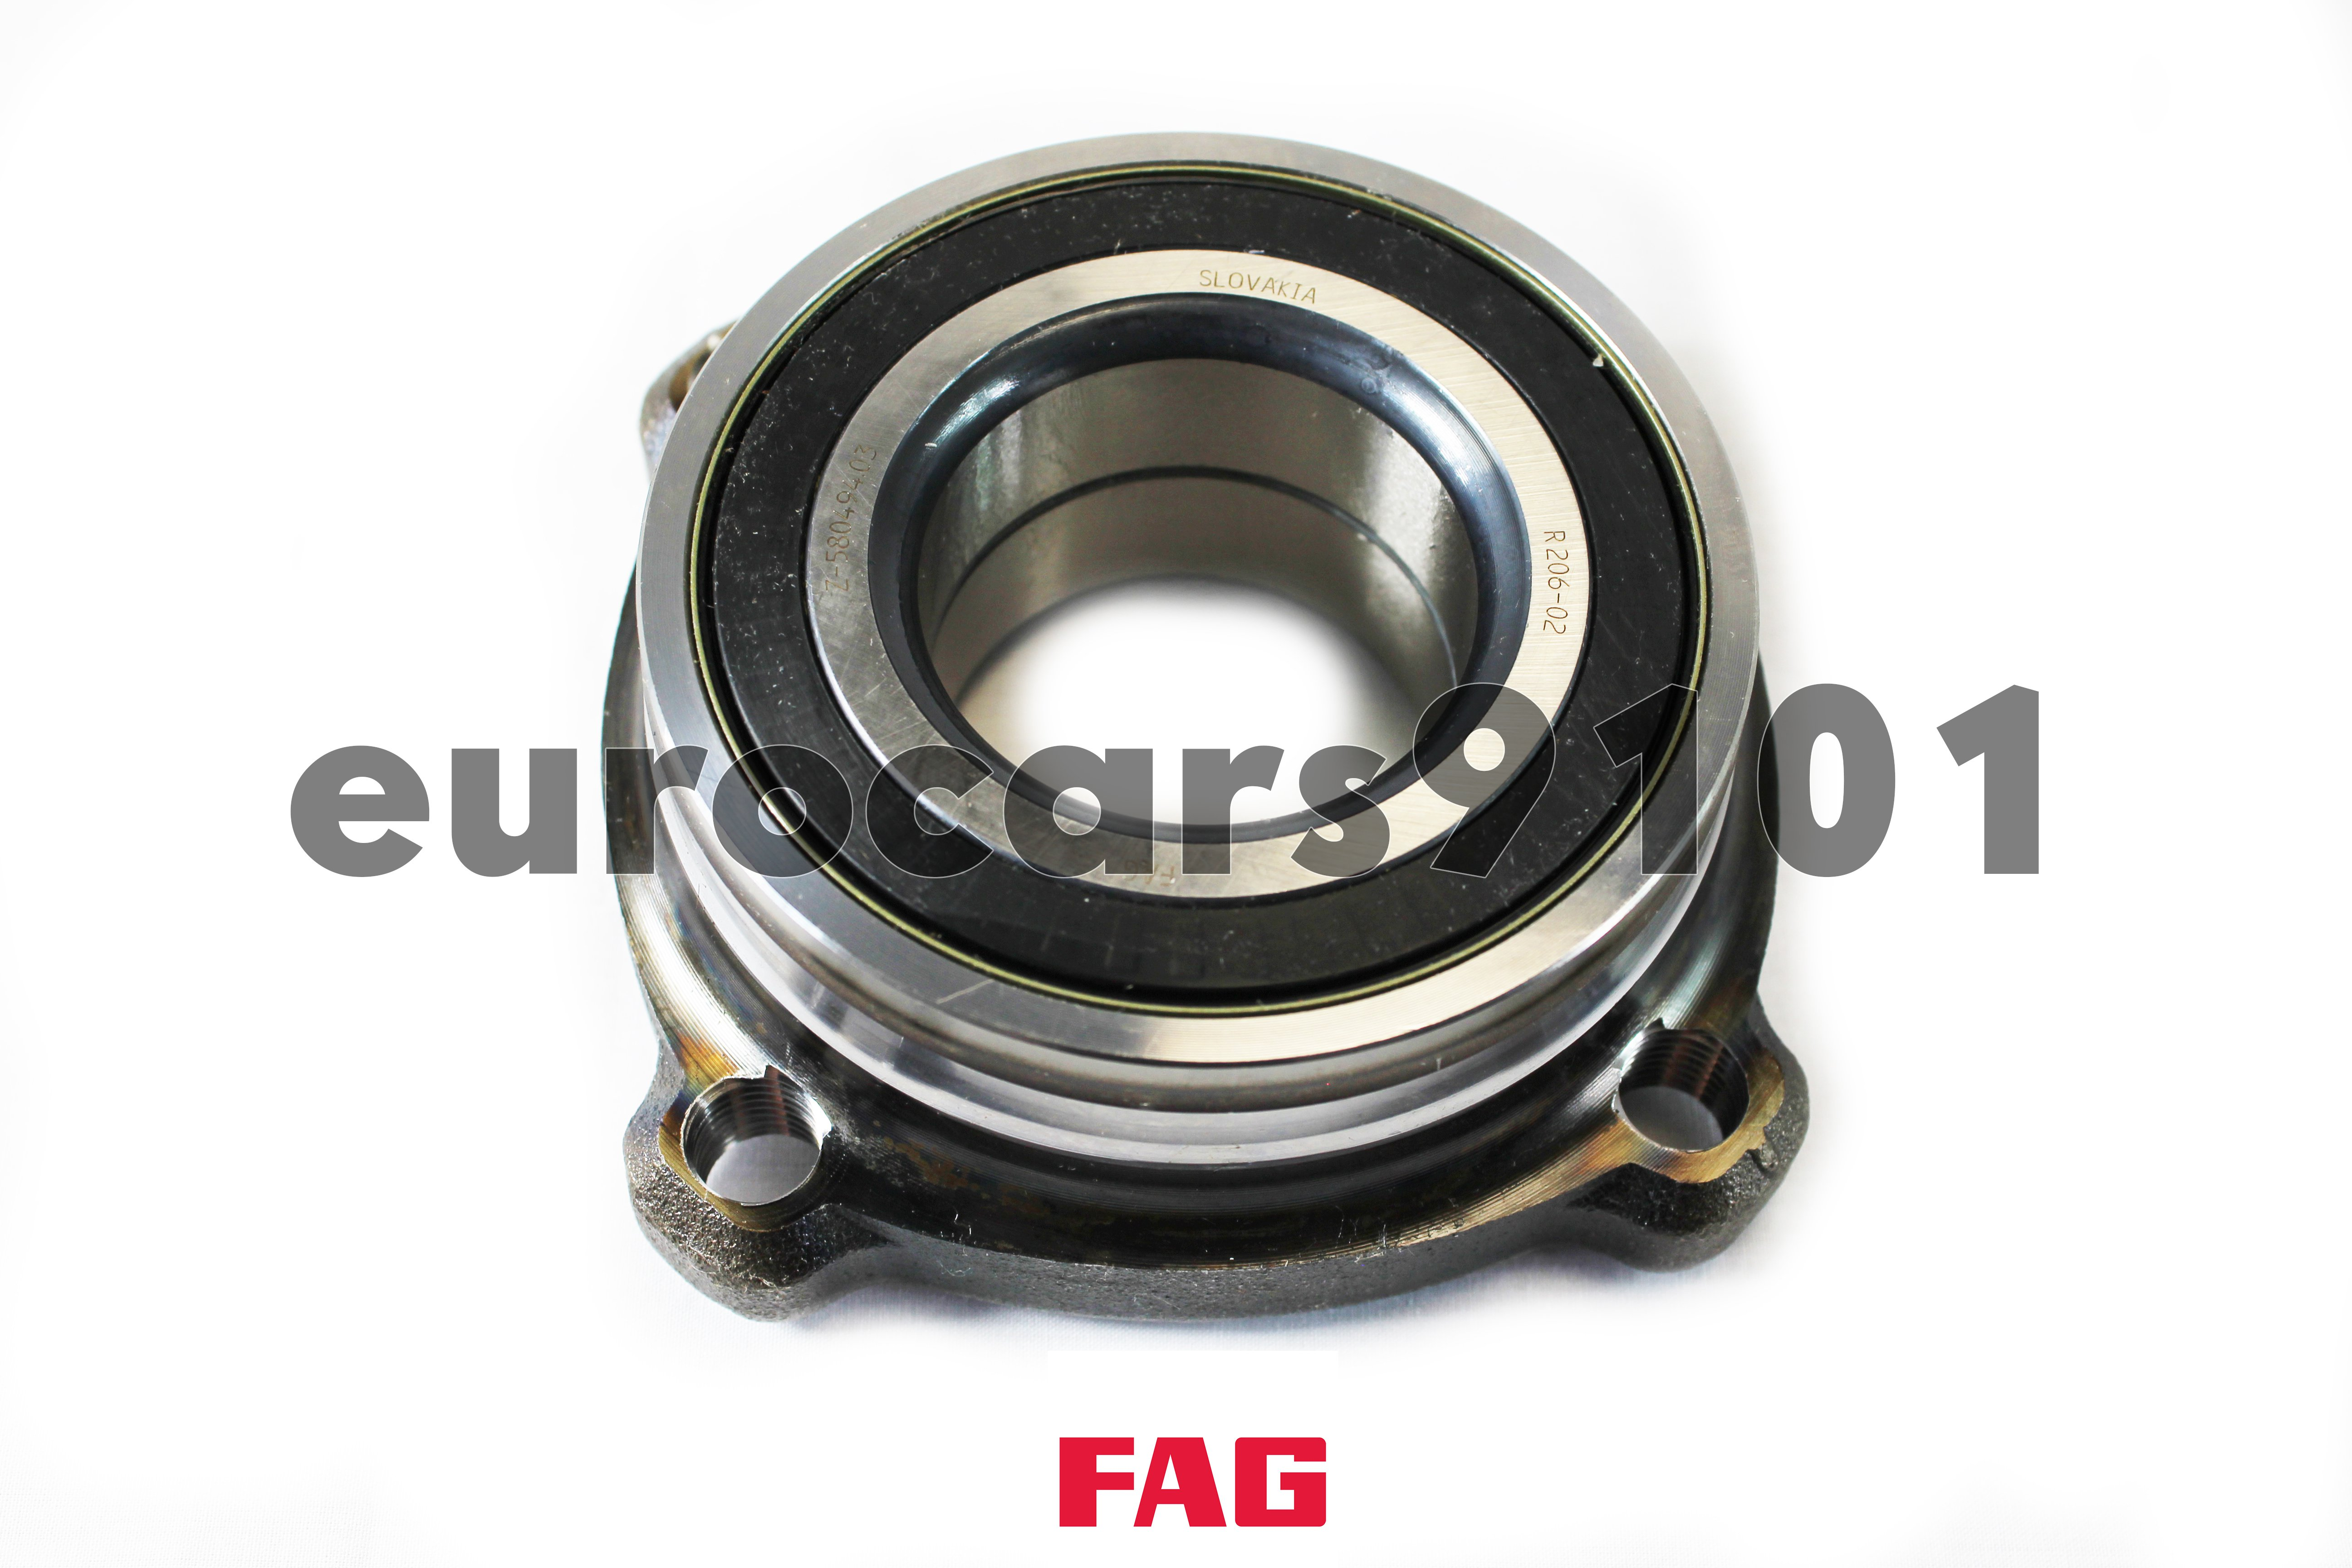 2005 fits BMW X5 Front Wheel Bearing One Bearing Included With Two Years Manufacturer Warranty